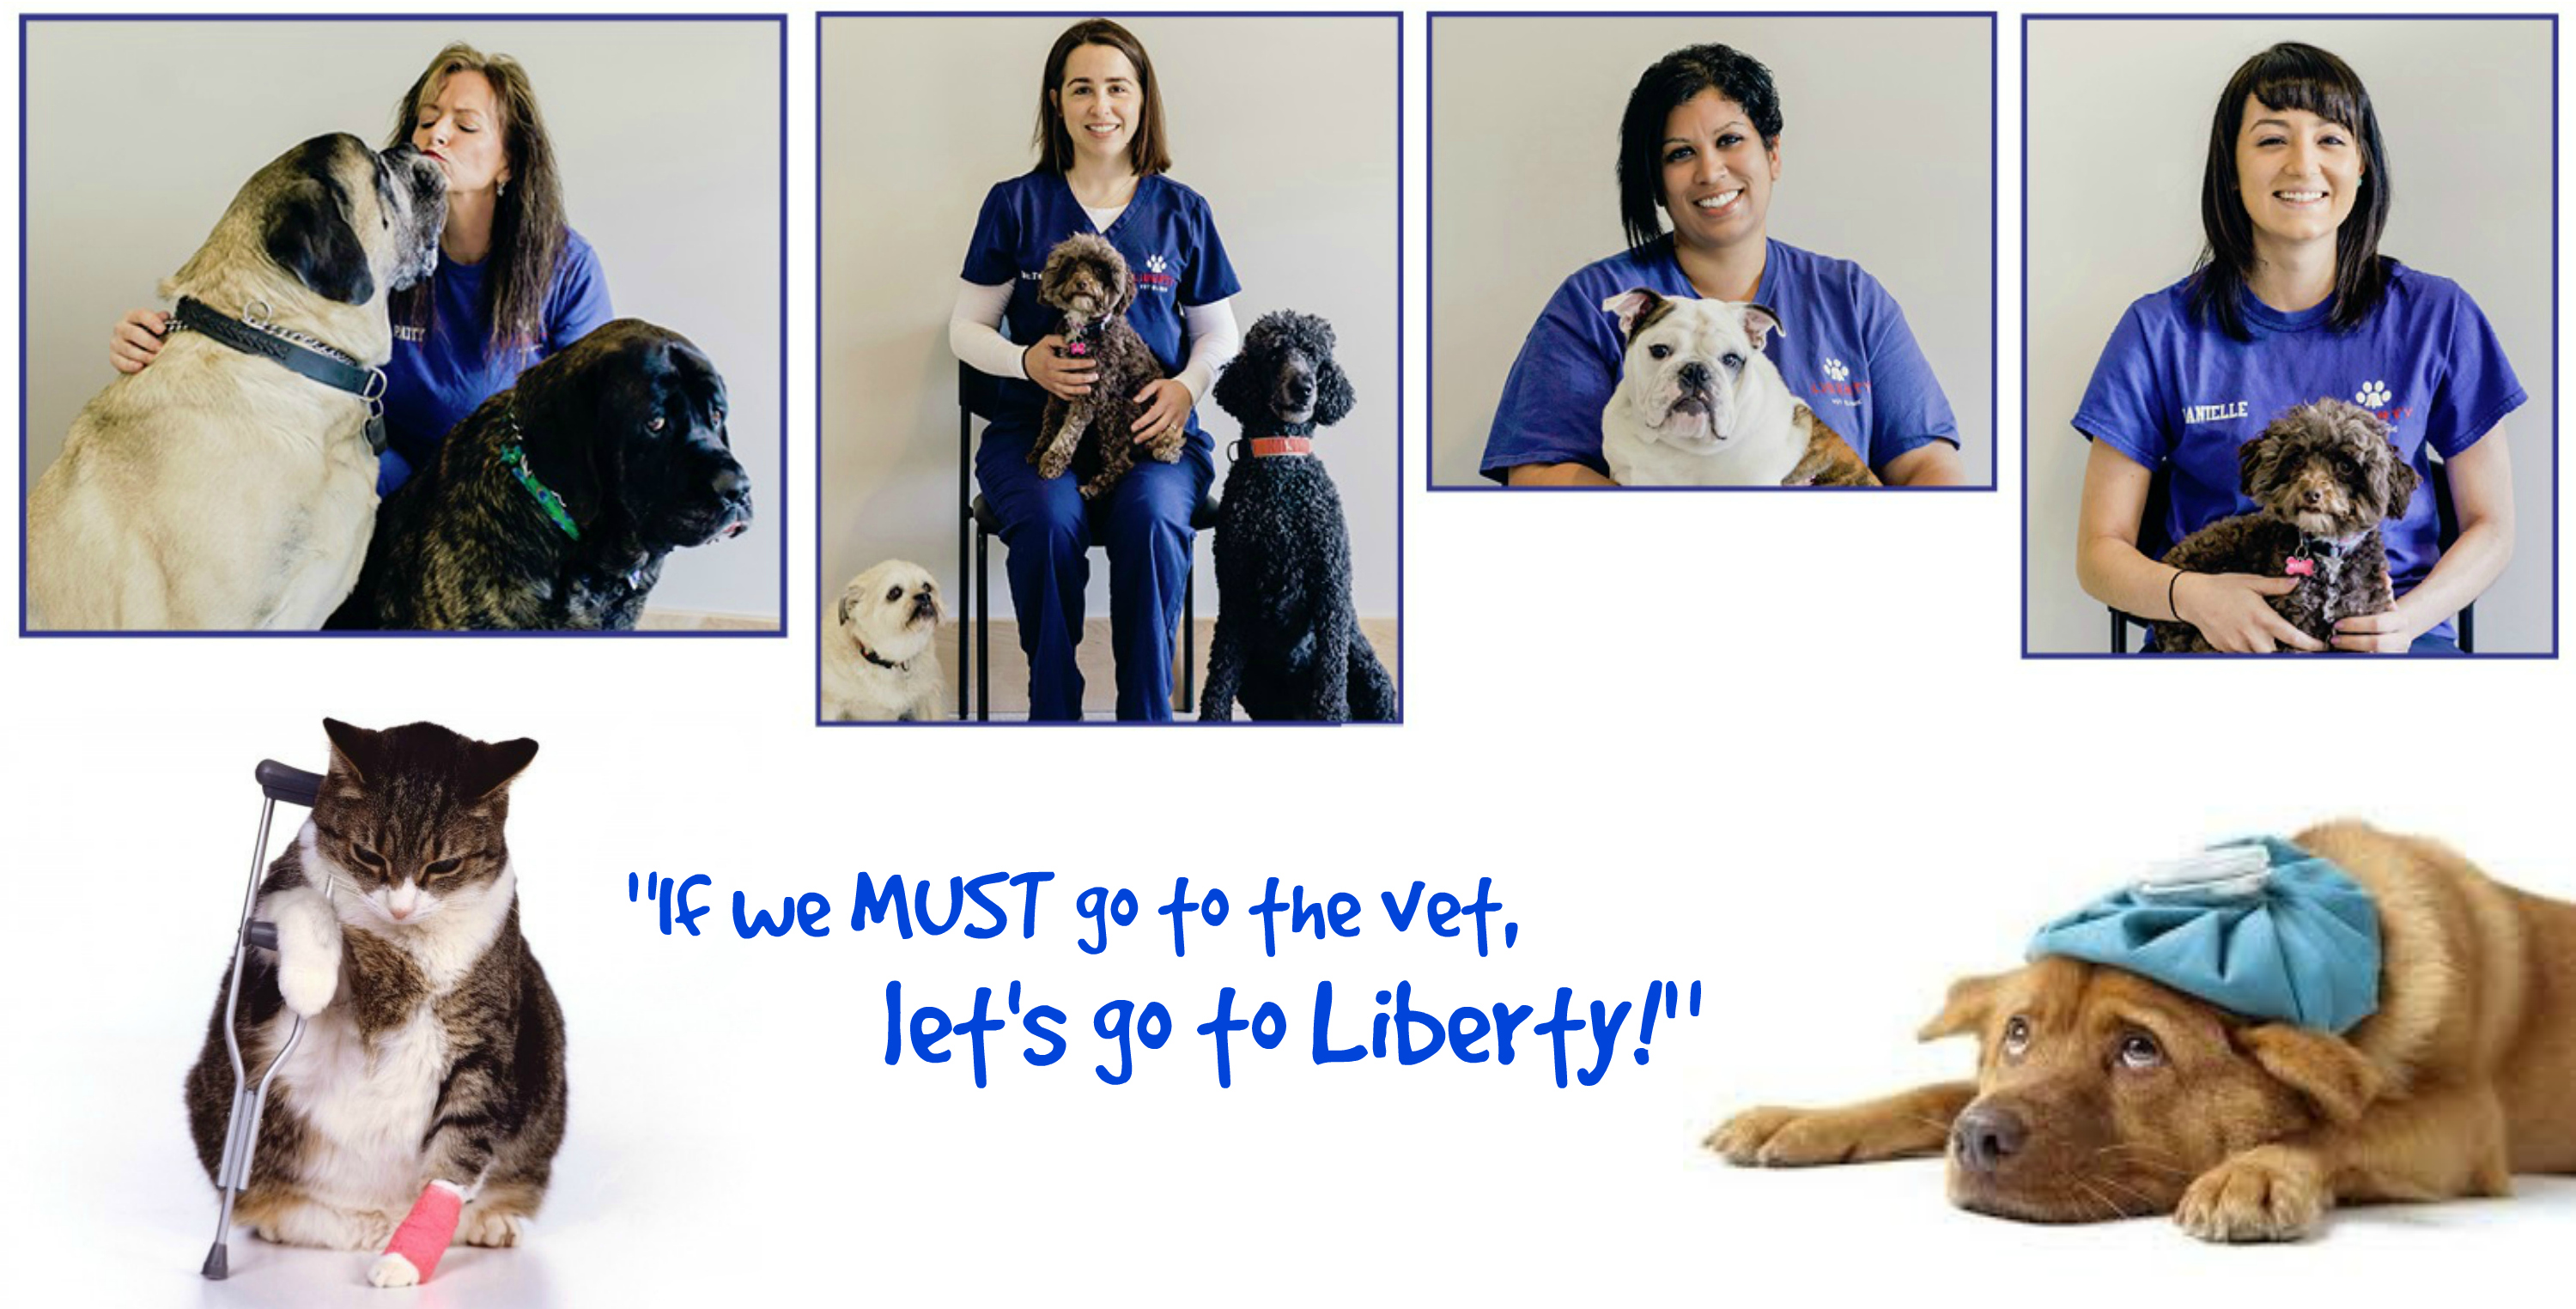 EastFallsLocal If We Must Go to the Vet collage